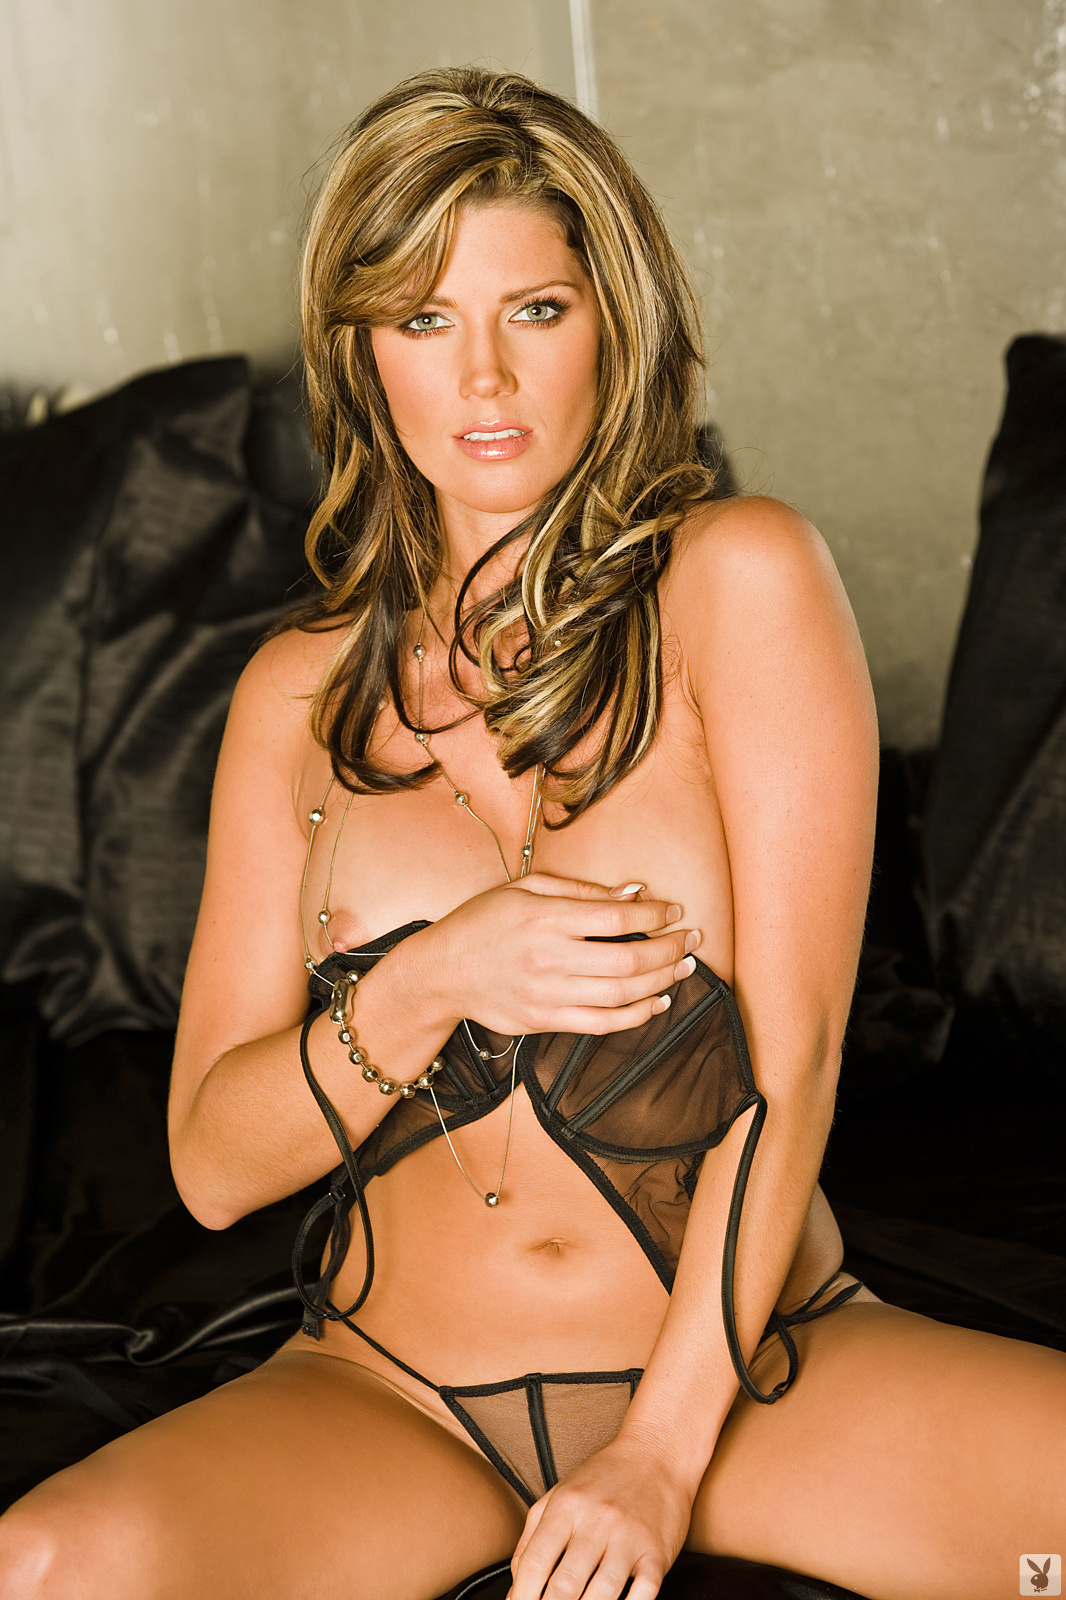 Playmate Exclusive May 2009 Crystal Mccahill0003